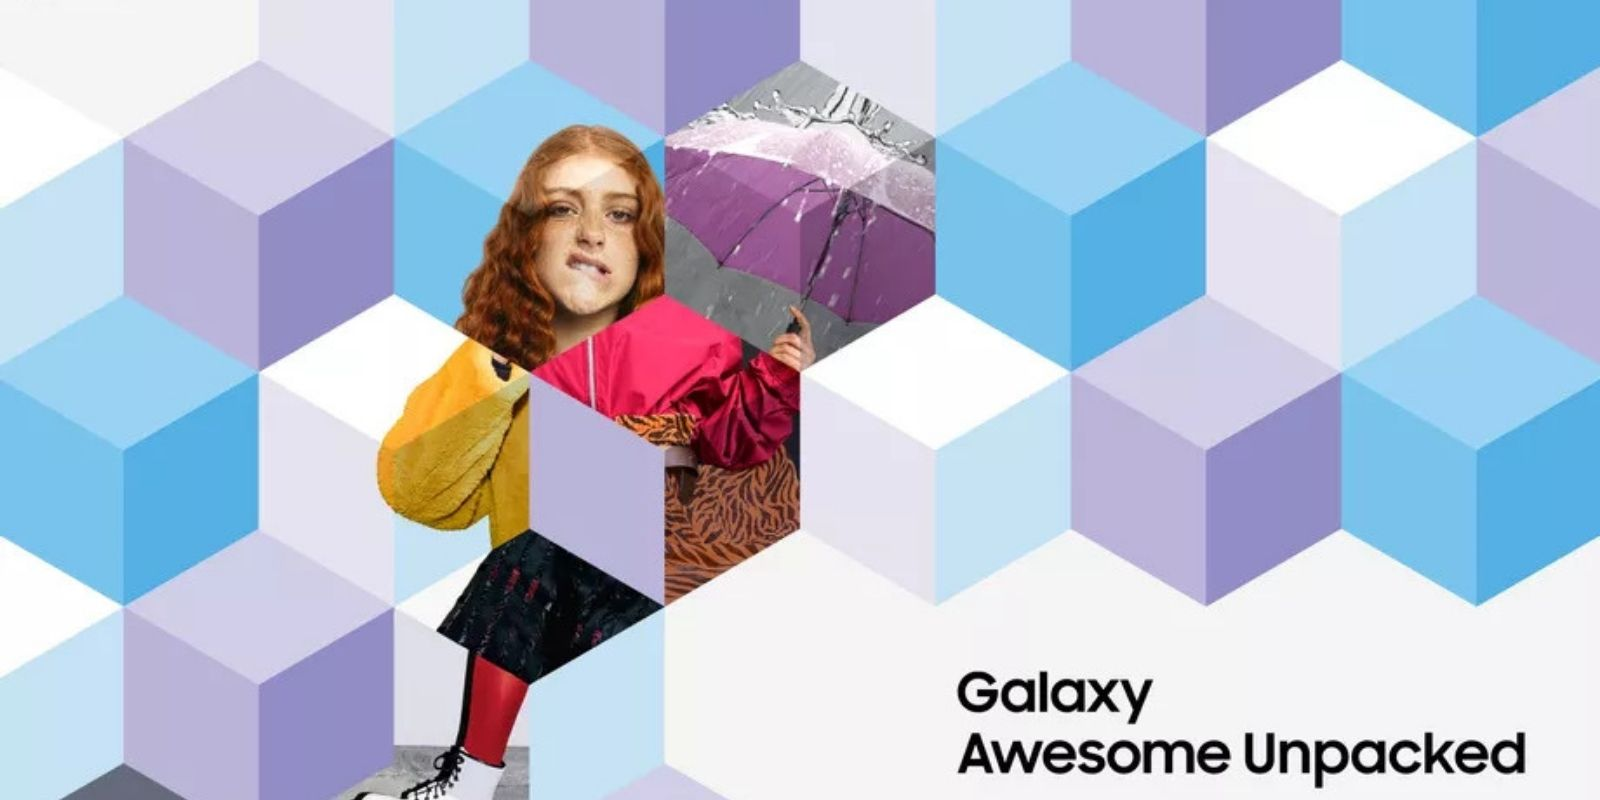 Samsung to host another Galaxy Unpacked event on March 17th, 2021